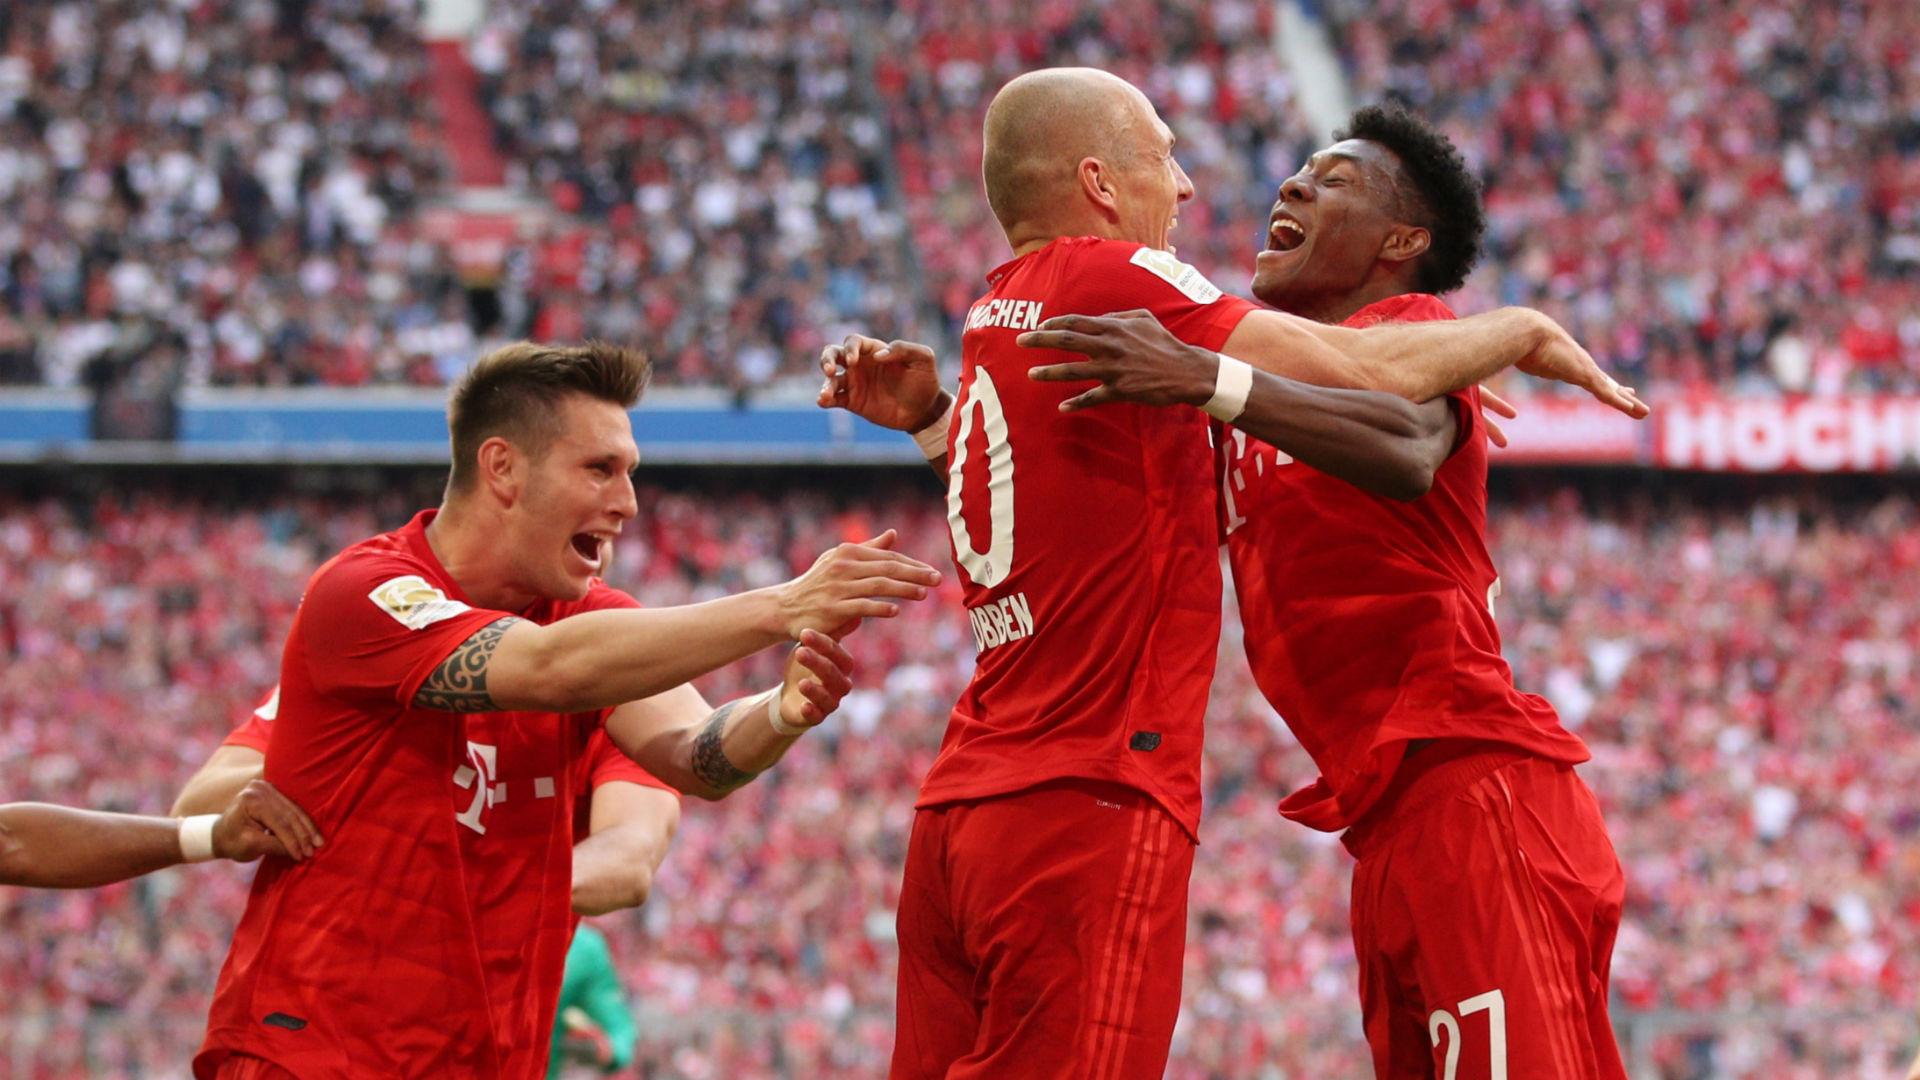 Ribery and Robben feel mixed emotions on Bayern farewell